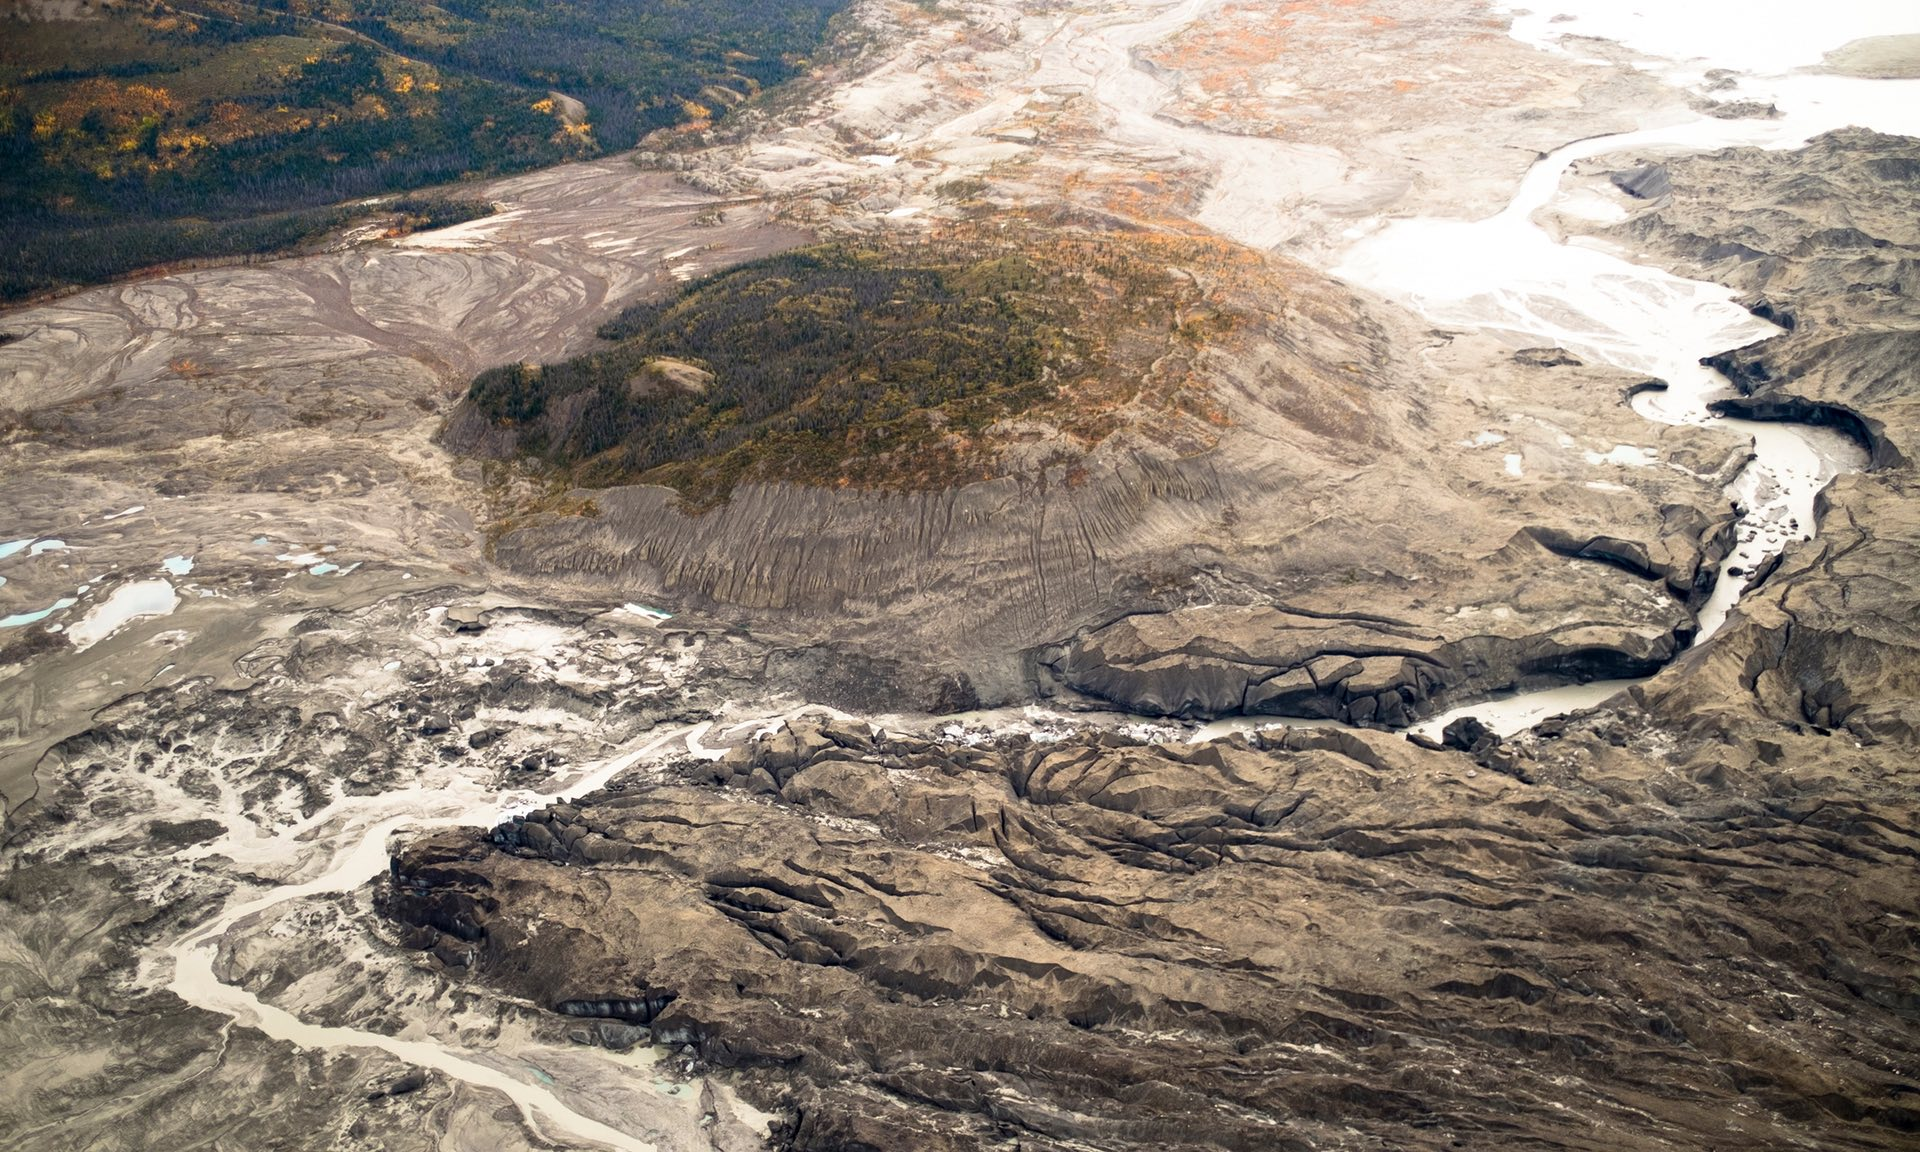 Source: https://www.theguardian.com/science/2017/apr/17/receding-glacier-causes-immense-canadian-river-to-vanish-in-four-days-climate-change